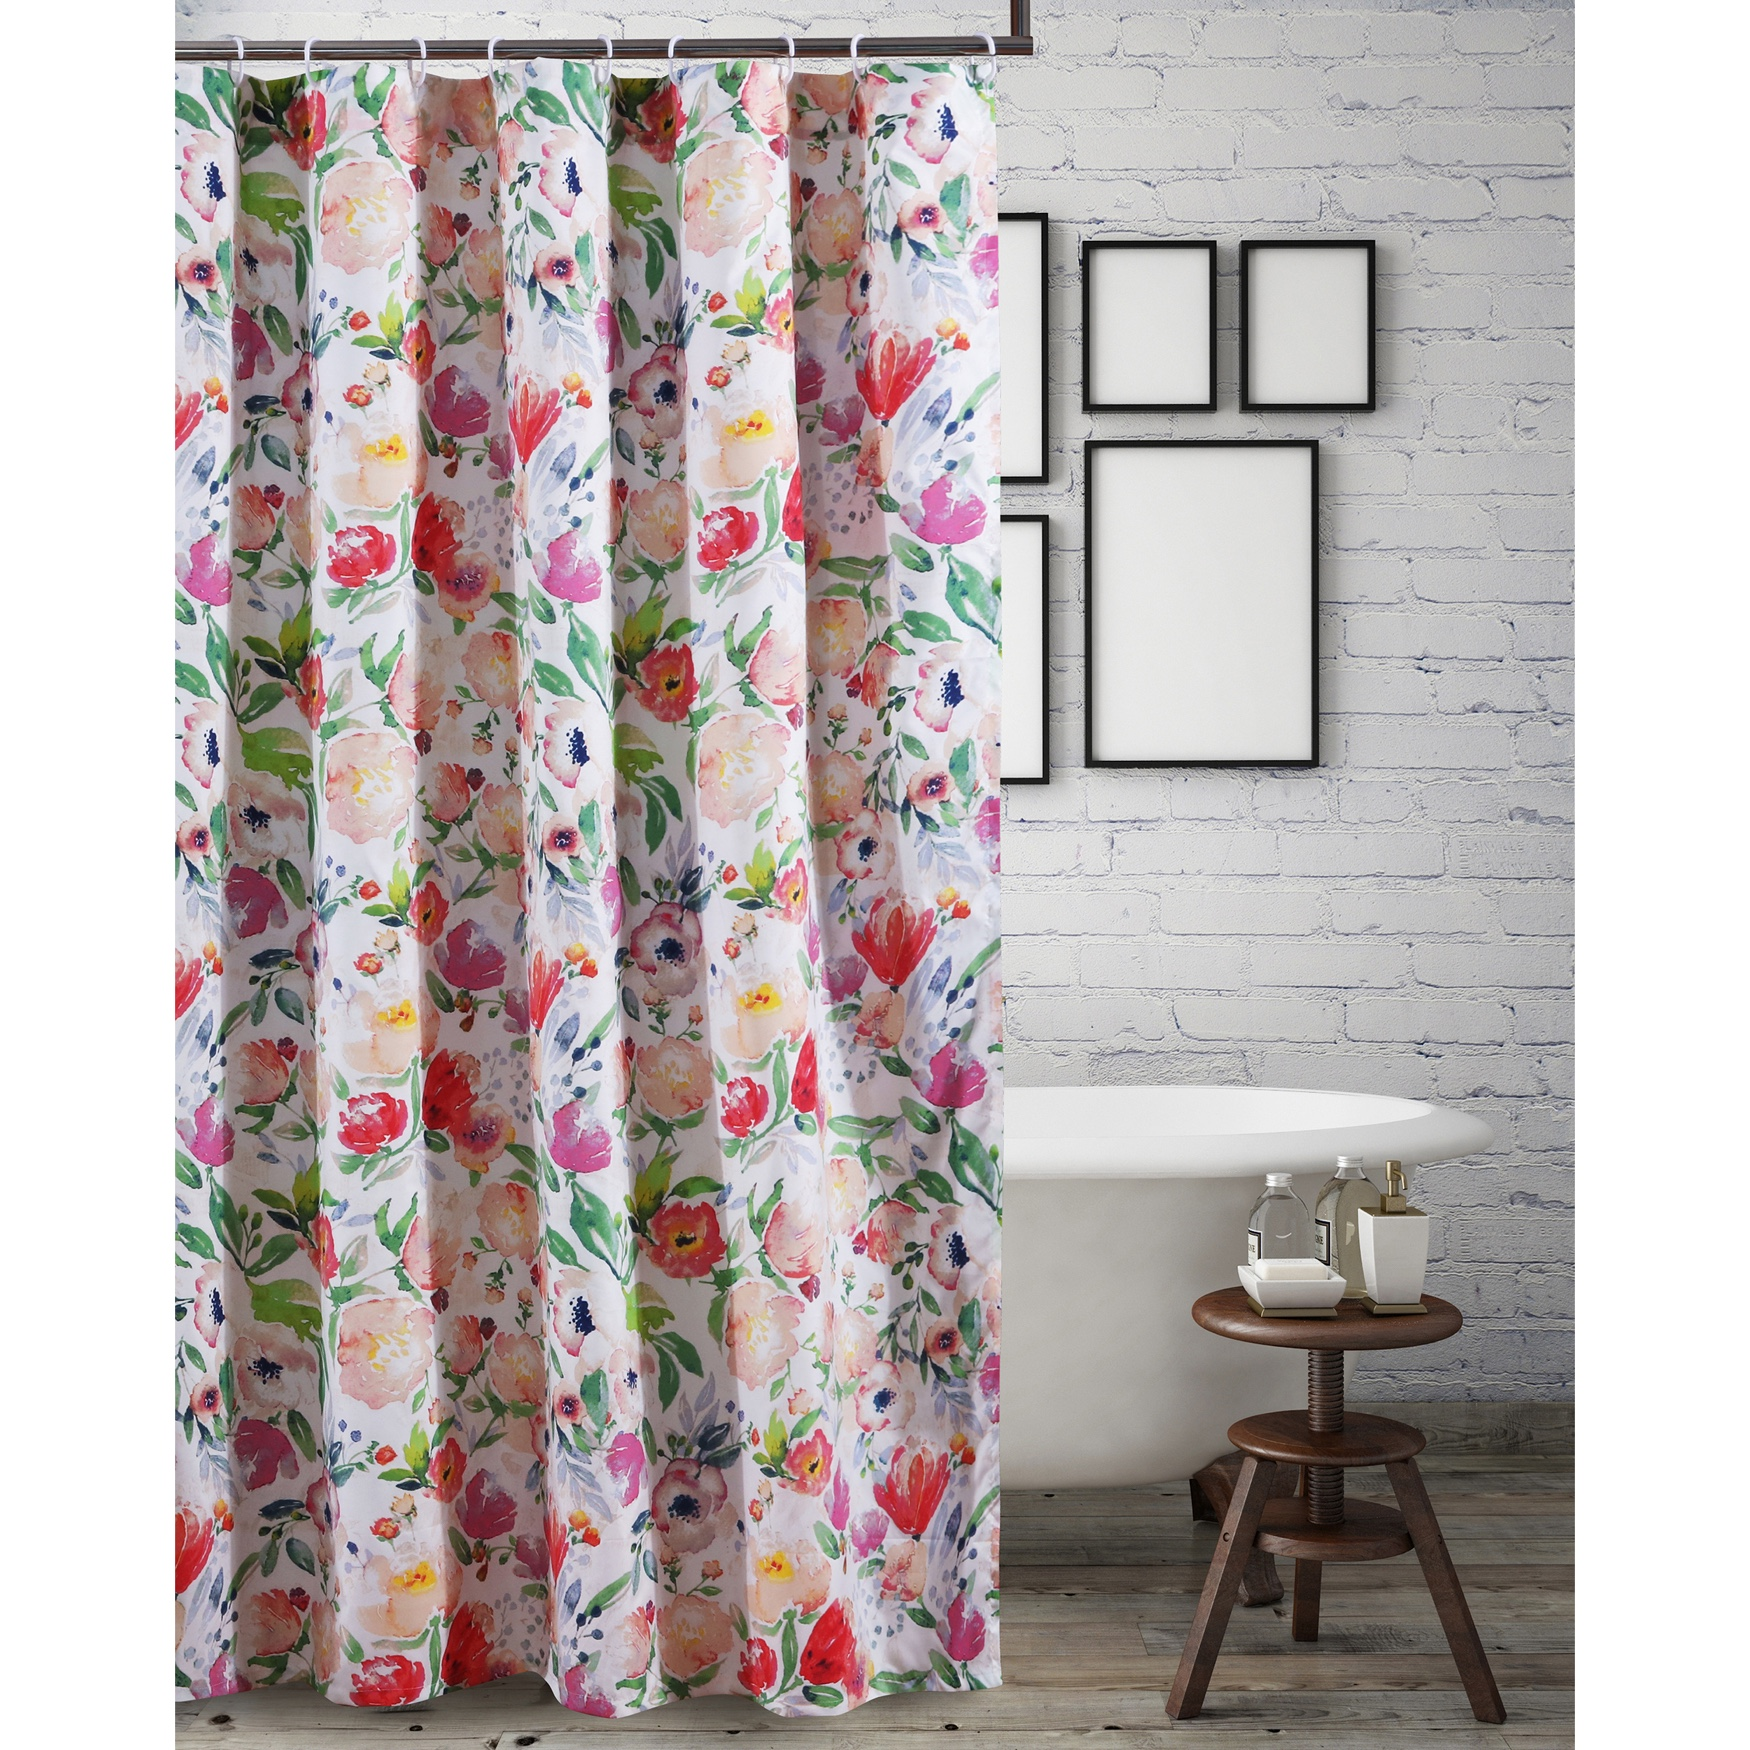 Blossom Shower Curtain by Barefoot Bungalow, MULTI